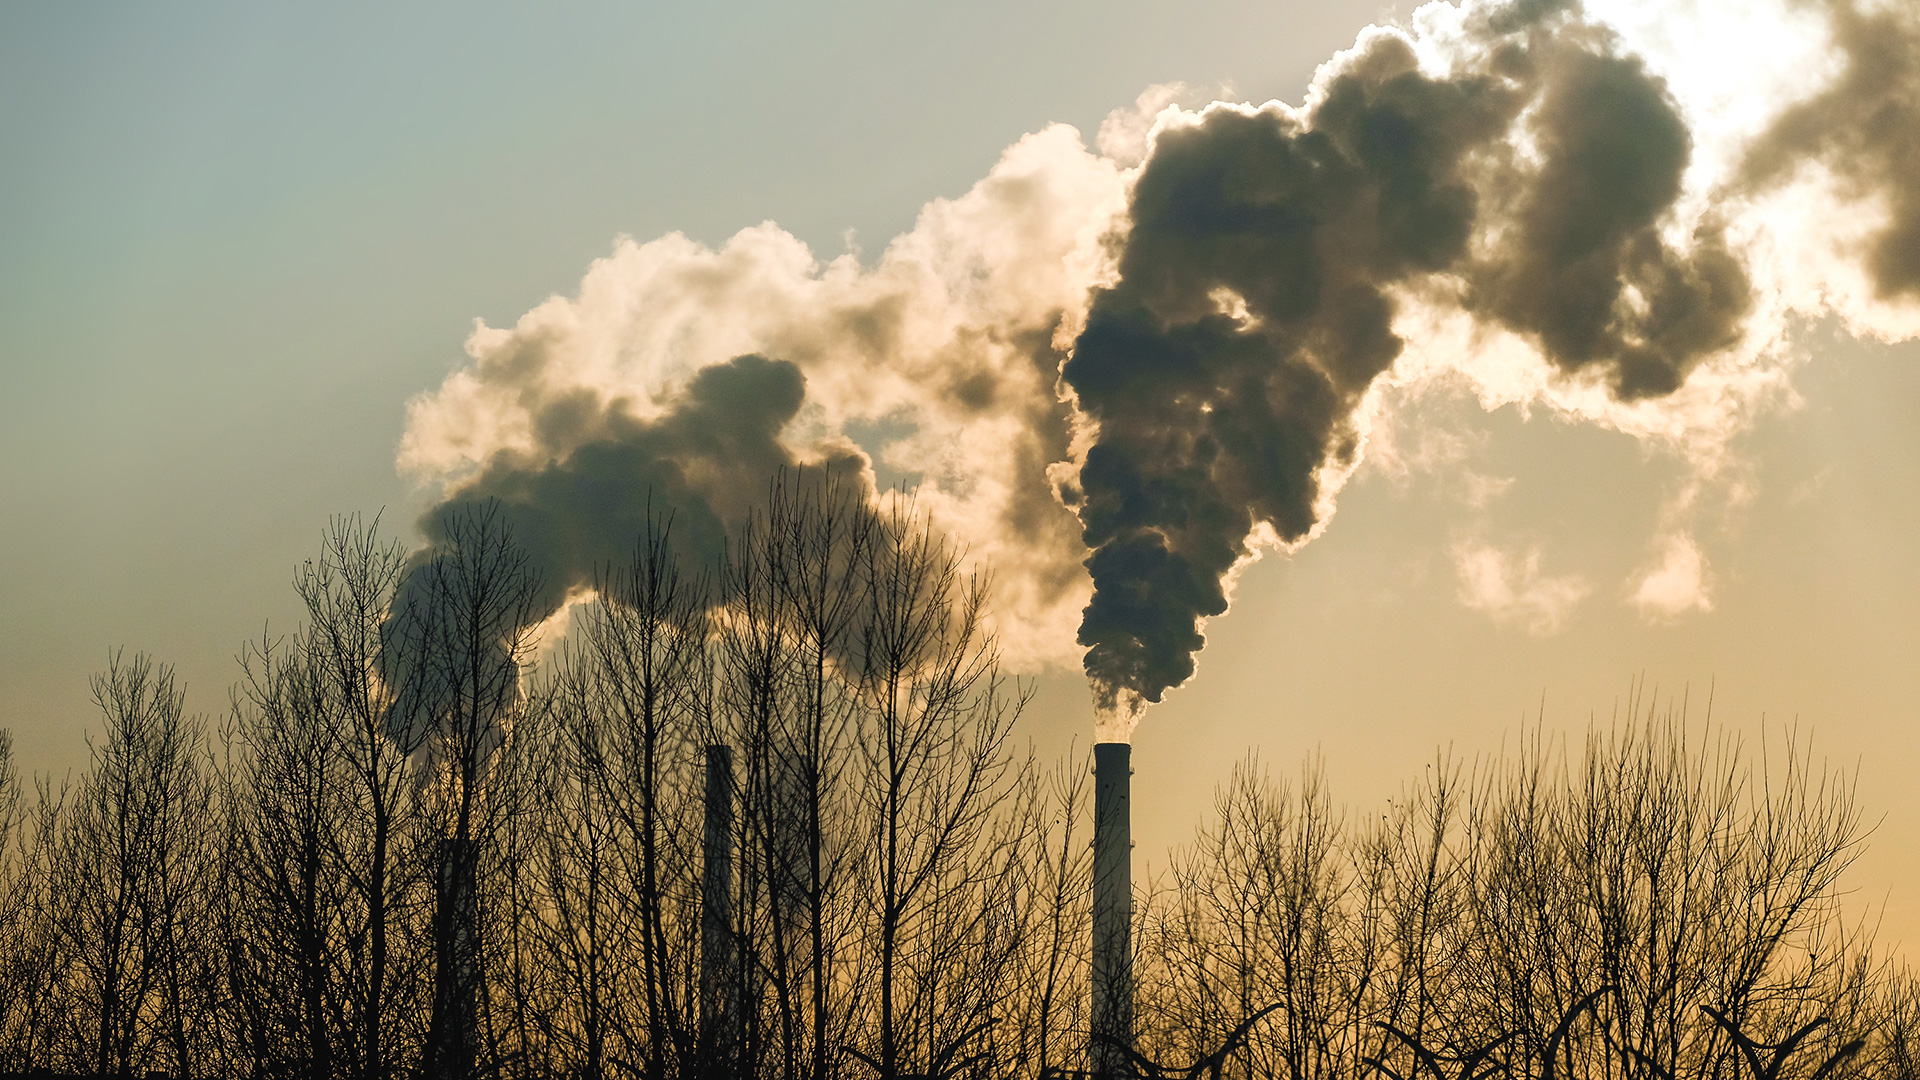 Can you claim a carbon credit for shutting down due to the pandemic?